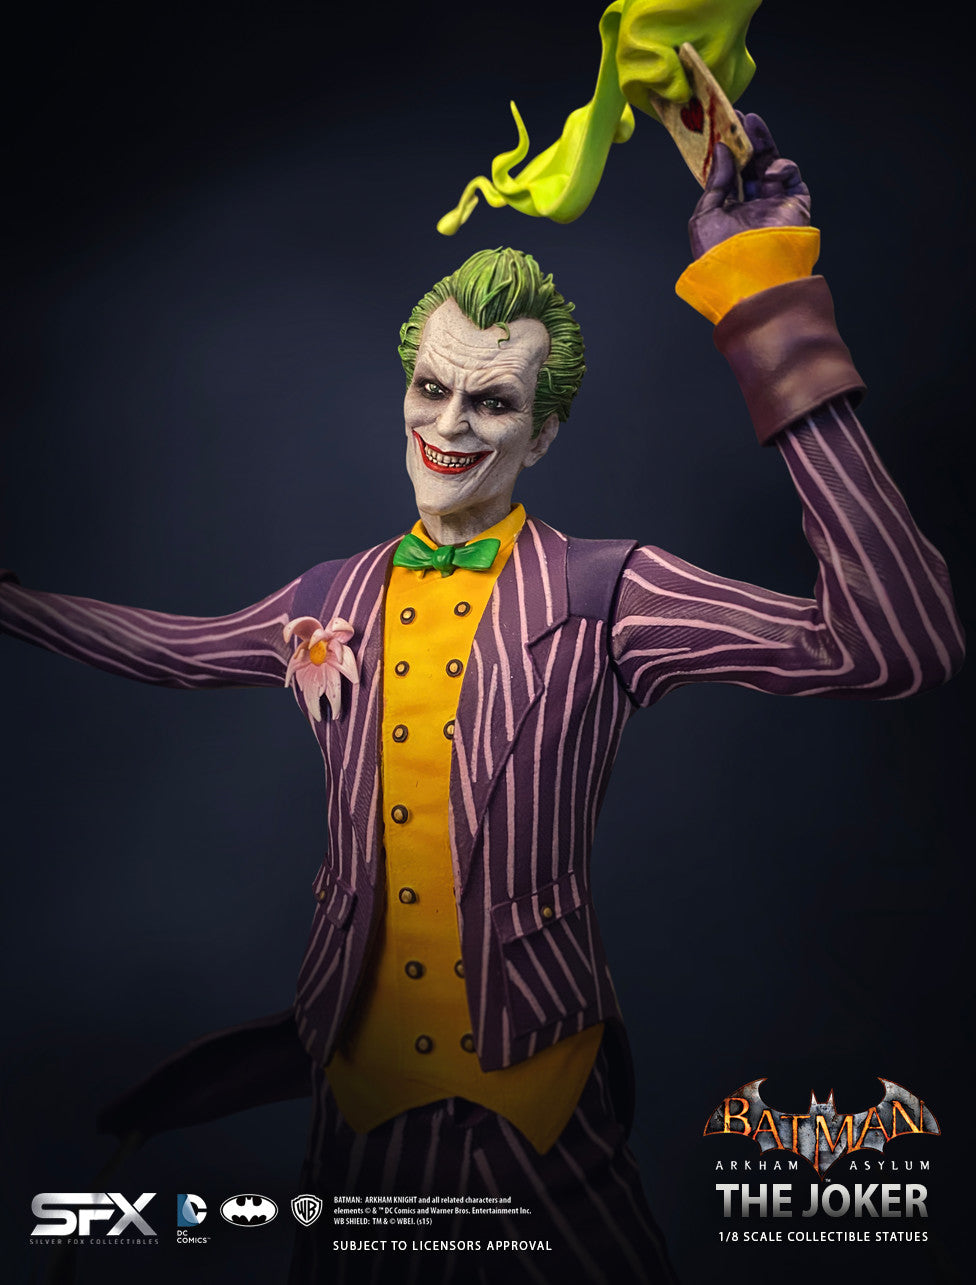 The Joker Arkham Asylum 1:8 Scale Statue